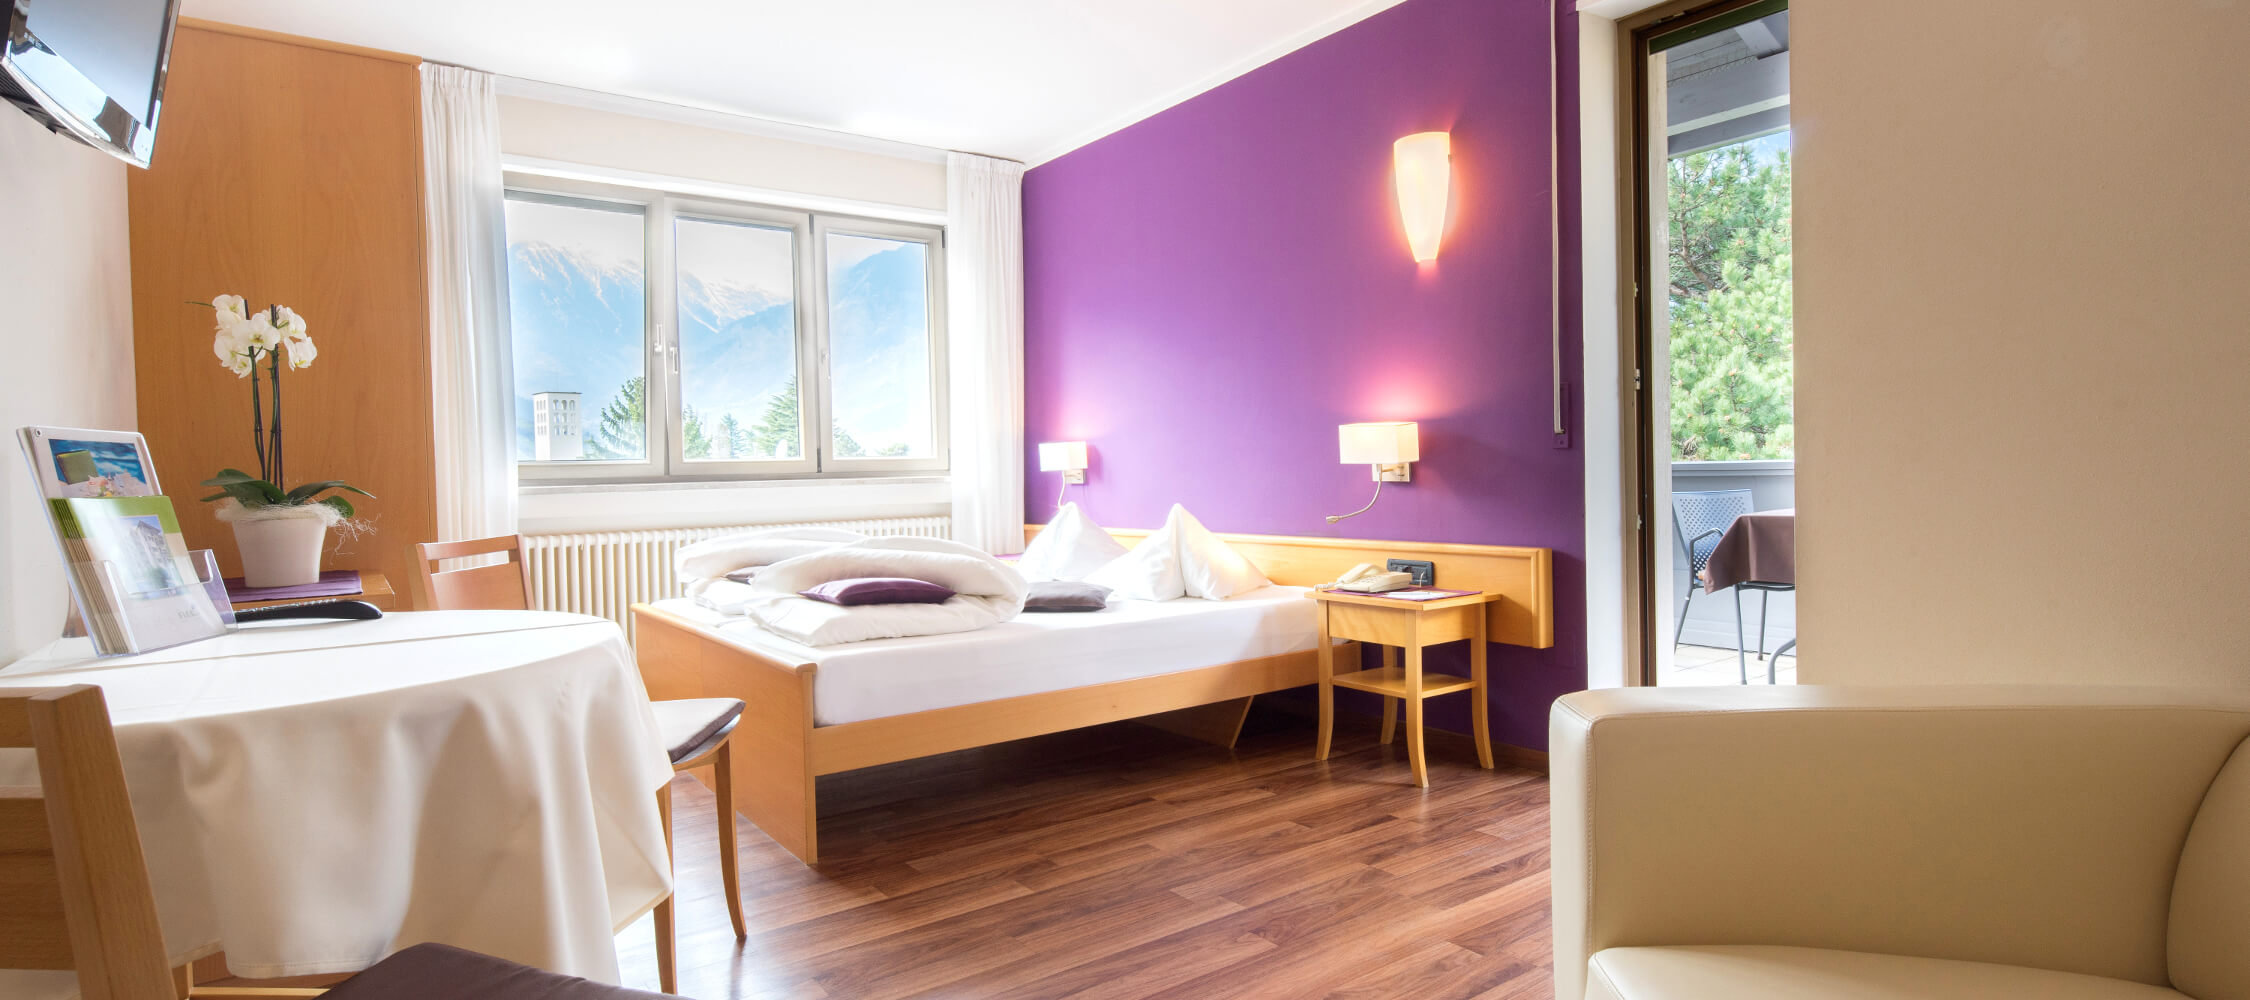 Hotel Flora, Merano, B&B, South Tyrol, priate terrace, king size double bed or 2 single beds, WiFi Internet for free, direct dial telephone, Sat TV with flat screen